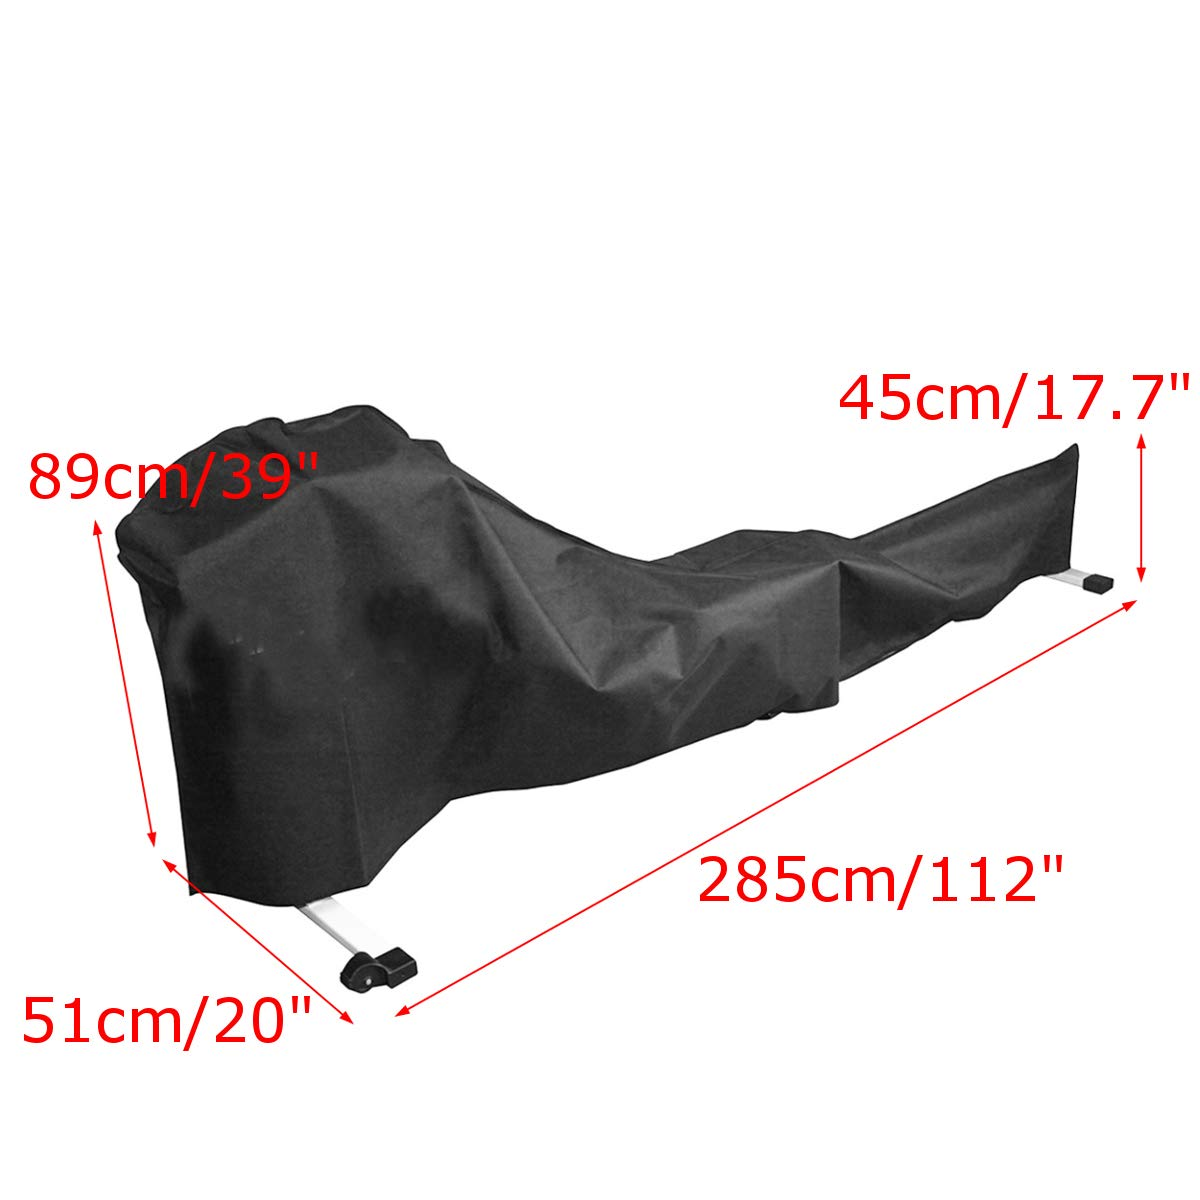 dDanke Black Rowing Machine Cover Sports Equipment Dust Covers for Outside Weather Rain & Sunshine Resistance 285x51x89cm by dDanke (Image #2)